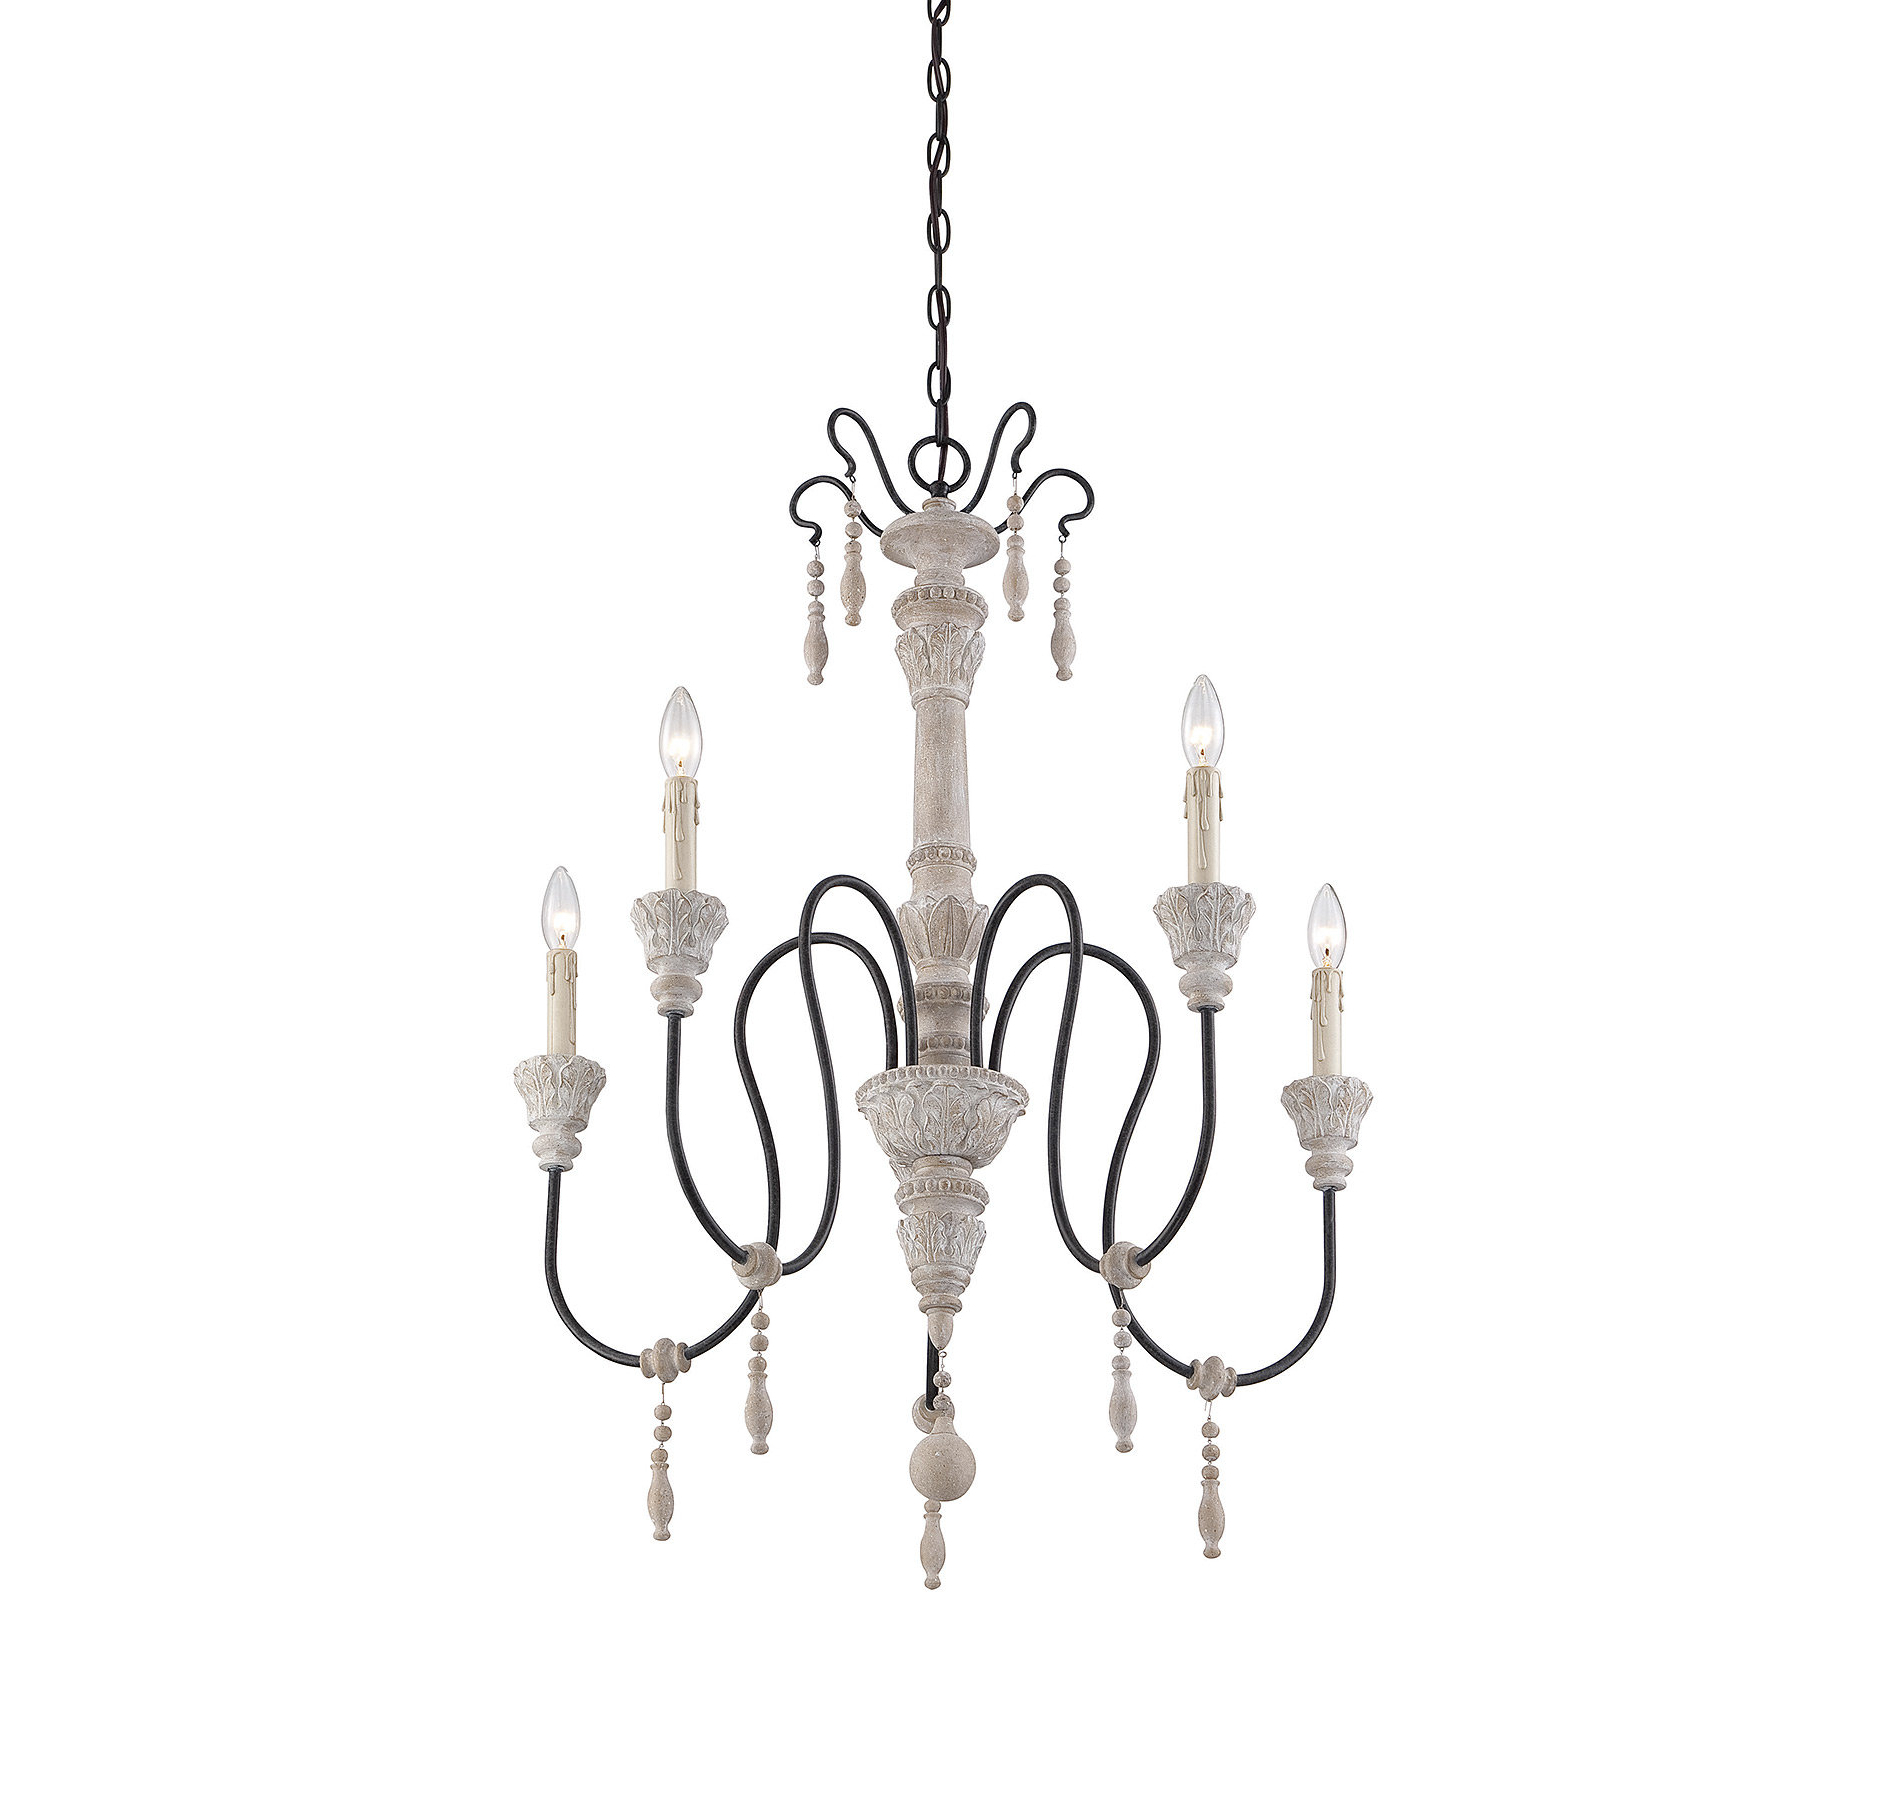 Corneau 5 Light Chandeliers Intended For Widely Used Corneau 5 Light Chandelier & Reviews (View 1 of 25)